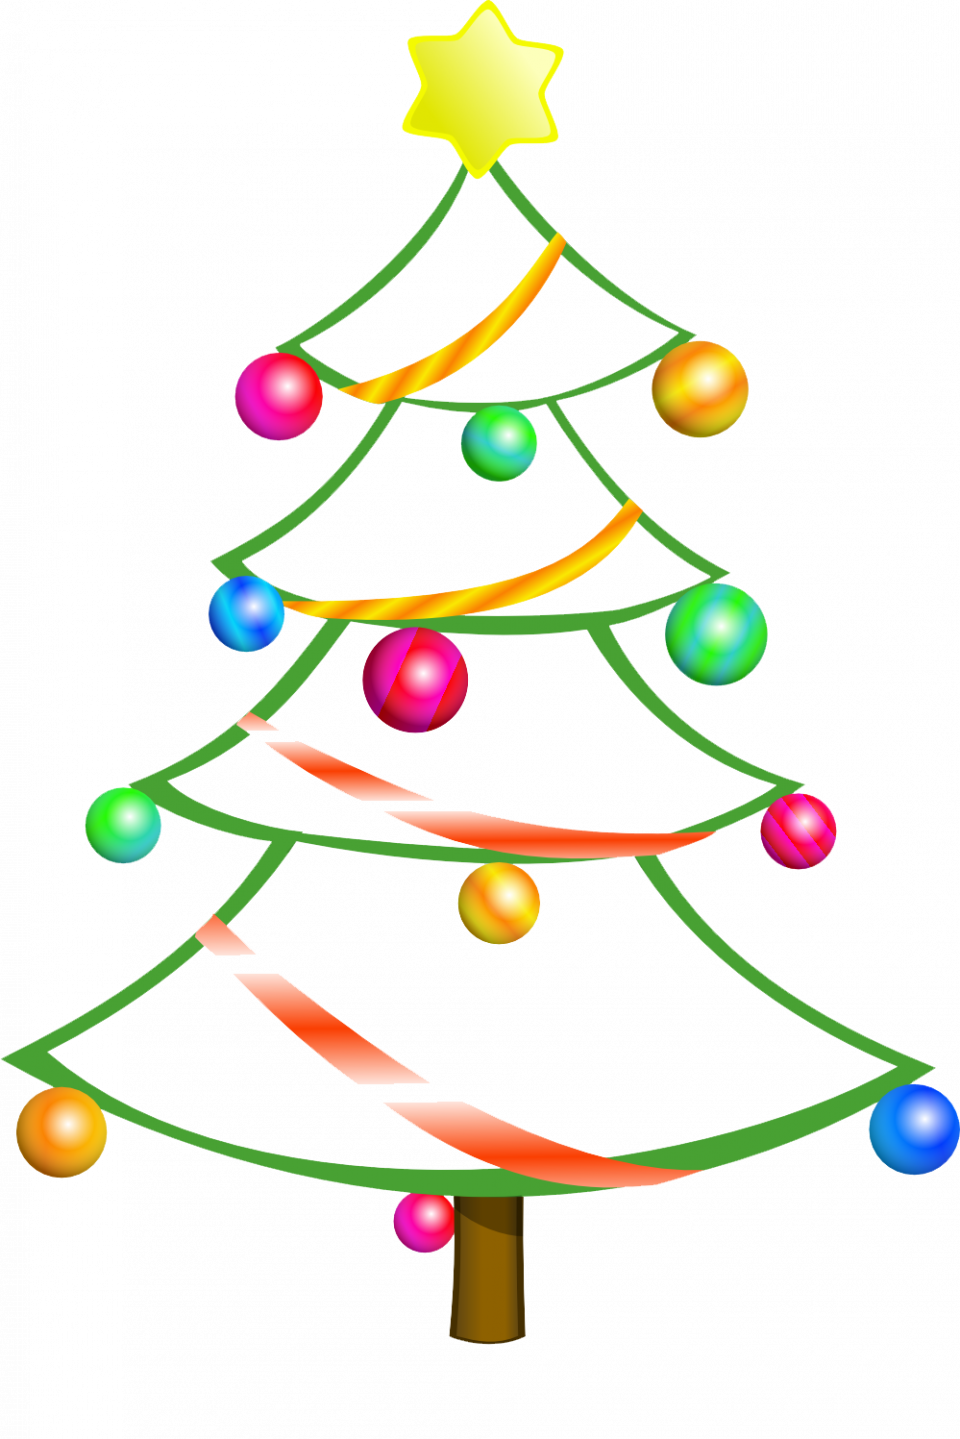 960x1439 Xmas Clipart Free Download Animated Clip Art Downloads Microsoft